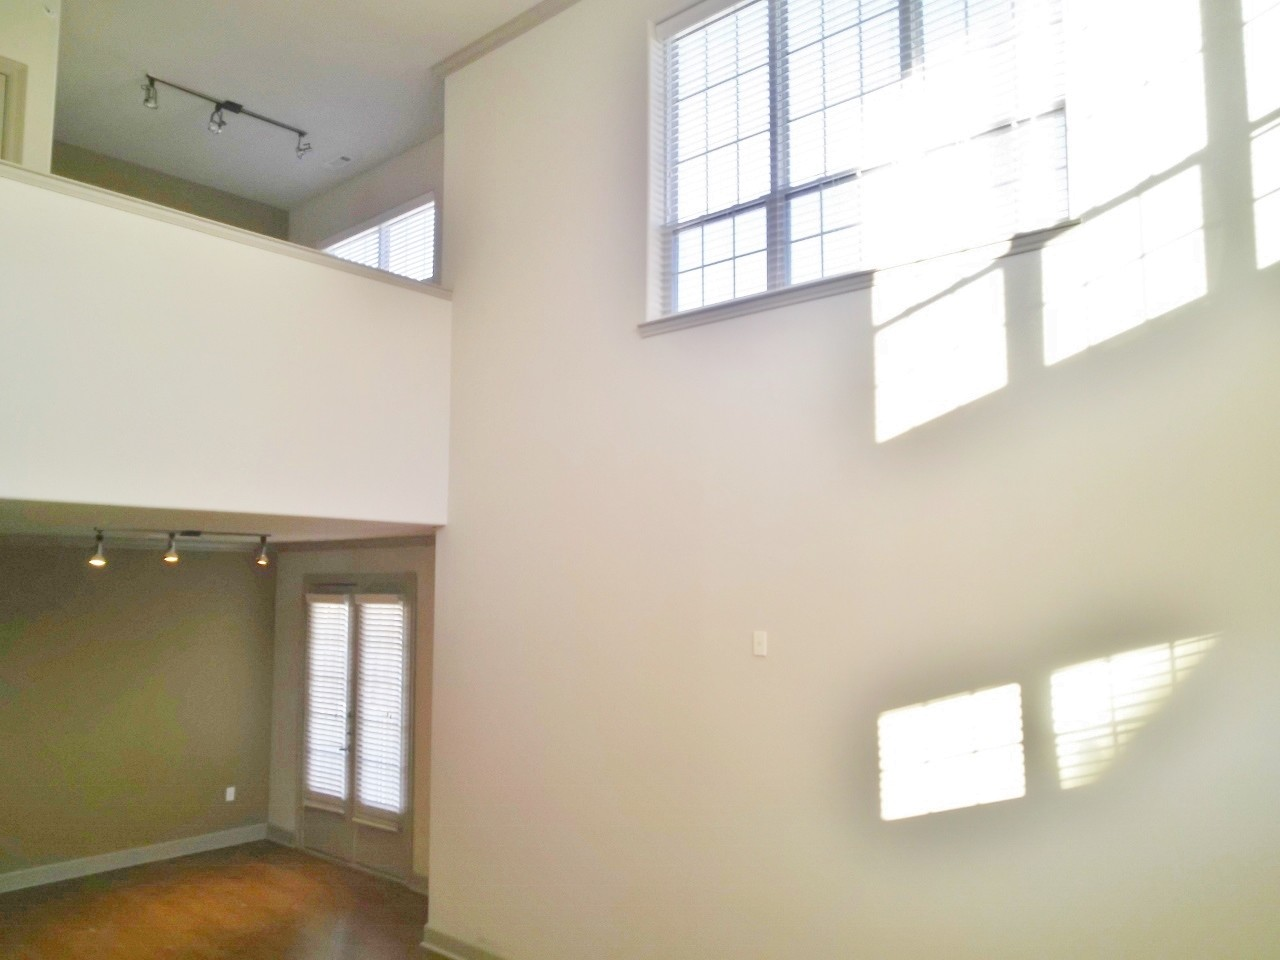 2 Beds, 2 Baths apartment in Braintree for $3,078